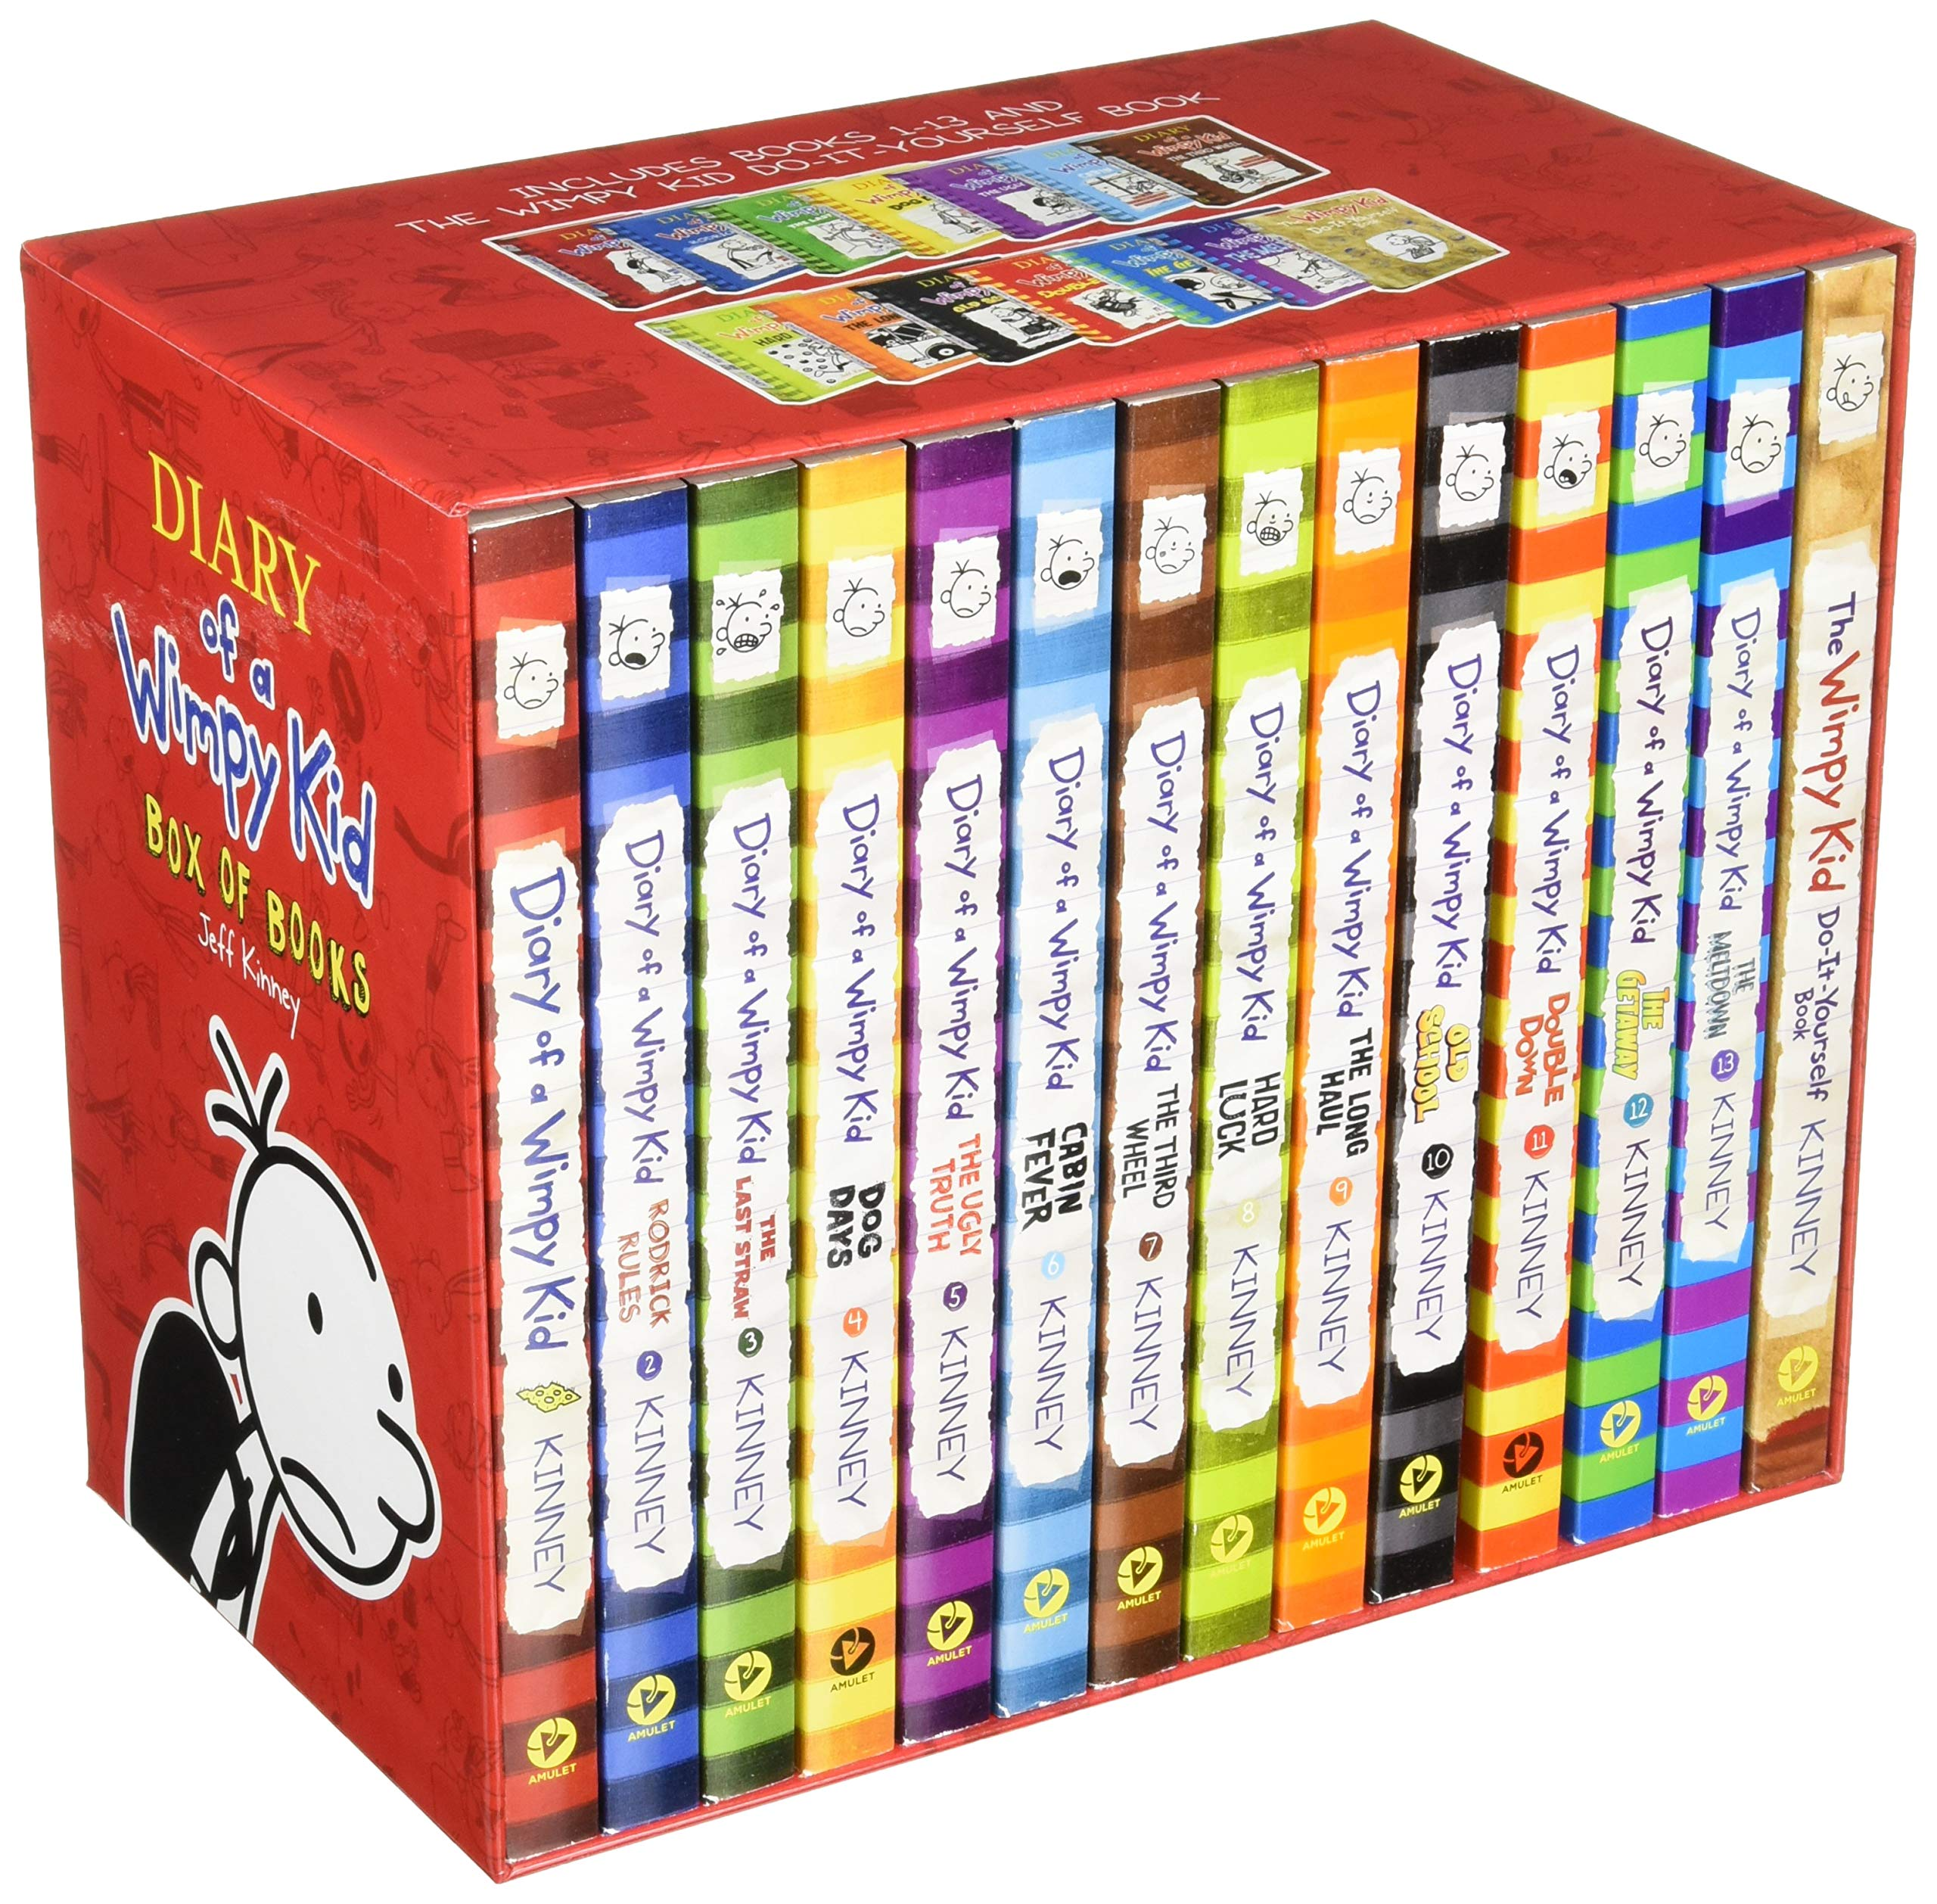 Diary of a Wimpy Kid Box of Books Export Edition (1–13   DIY)